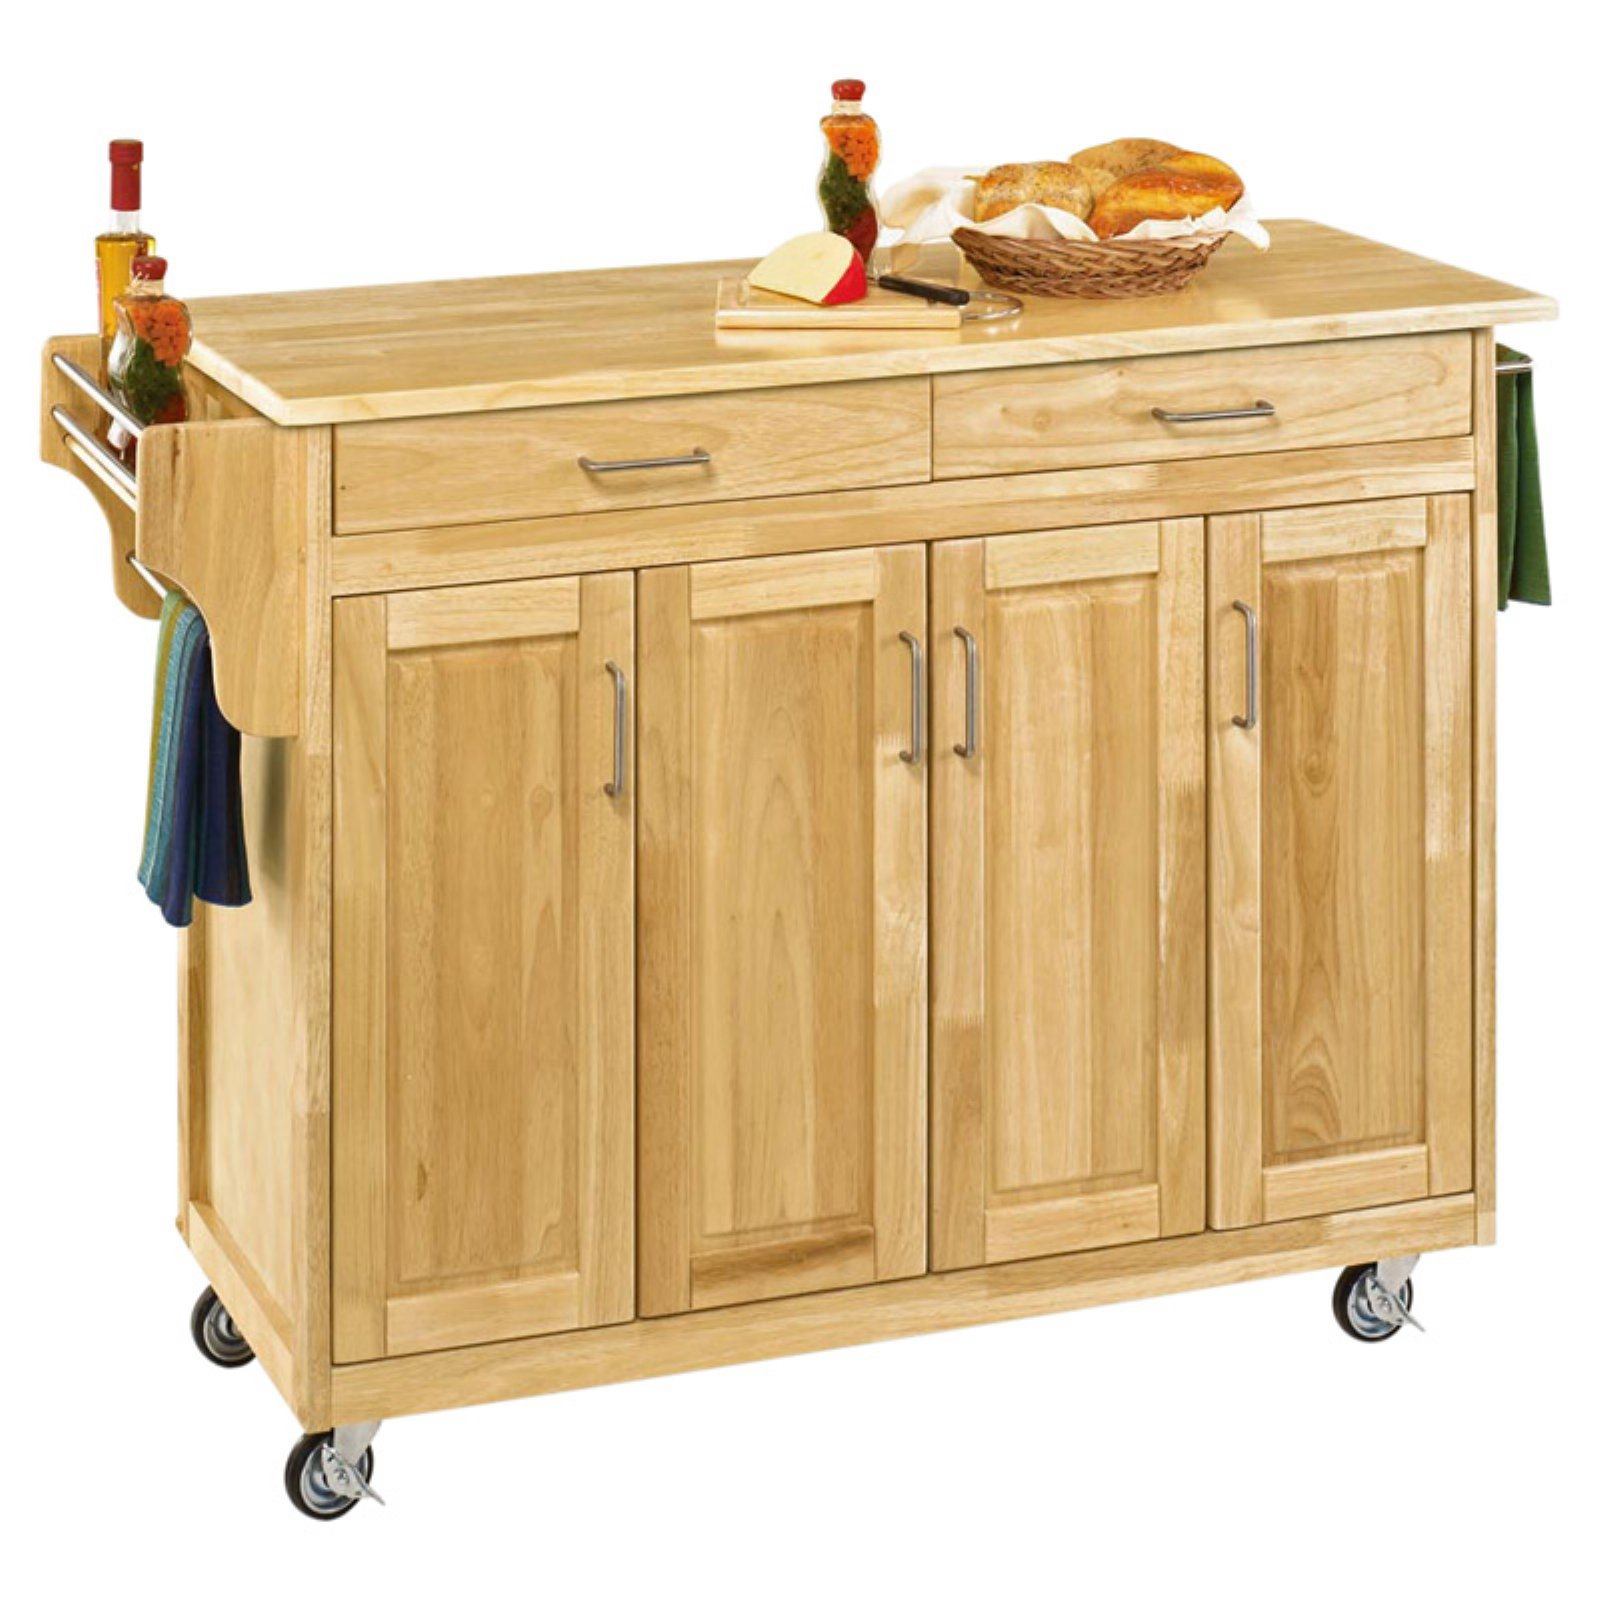 Homestyle s Large Create-a-Cart Kitchen Island